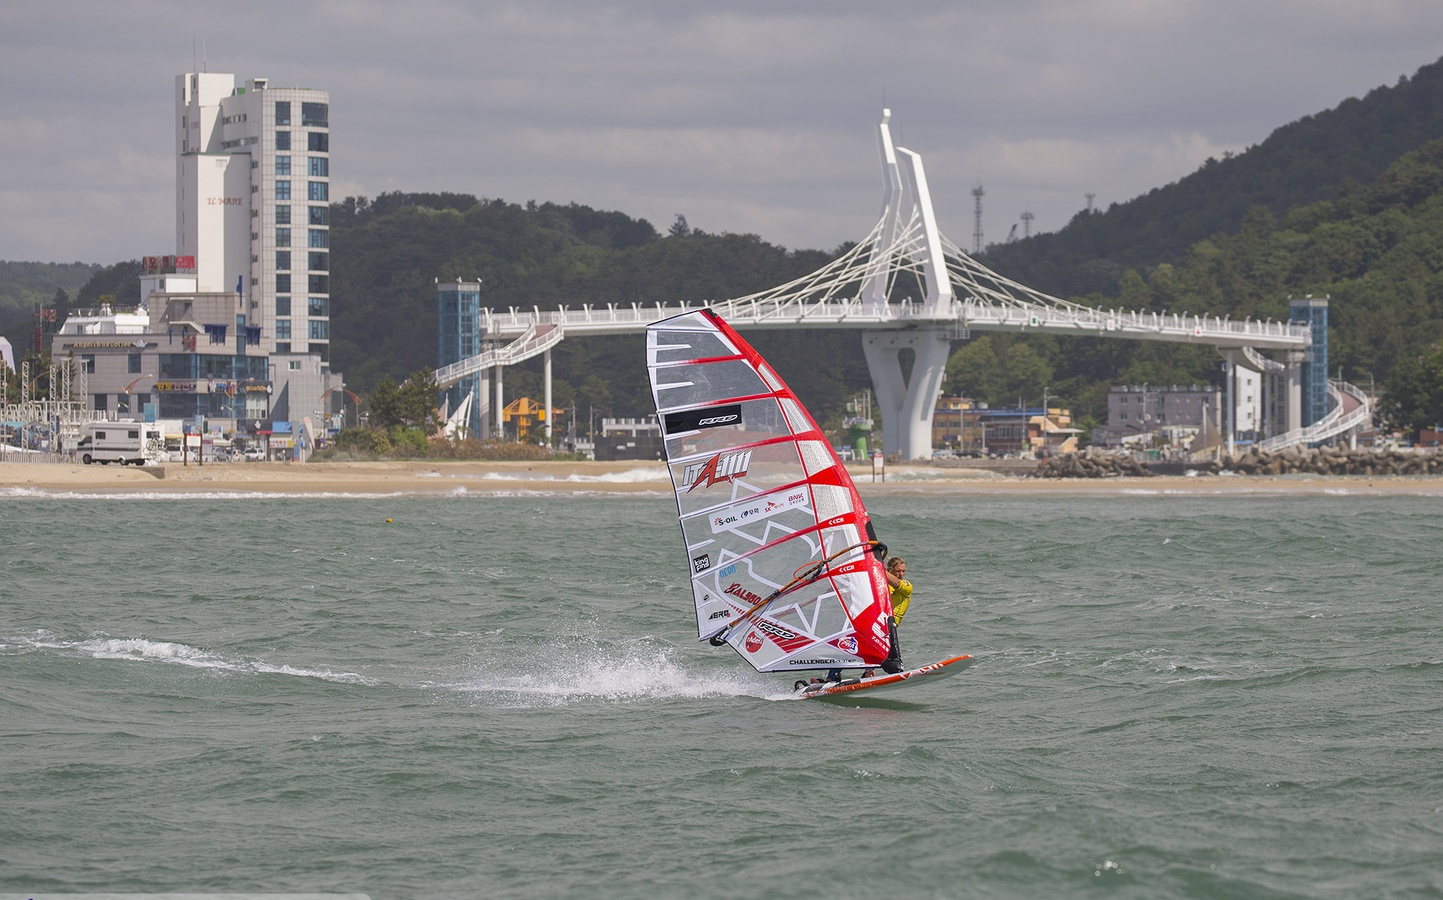 Catchup with Italy's Matteo Iachino and Andrea Ferin After A Close Call For Foiling